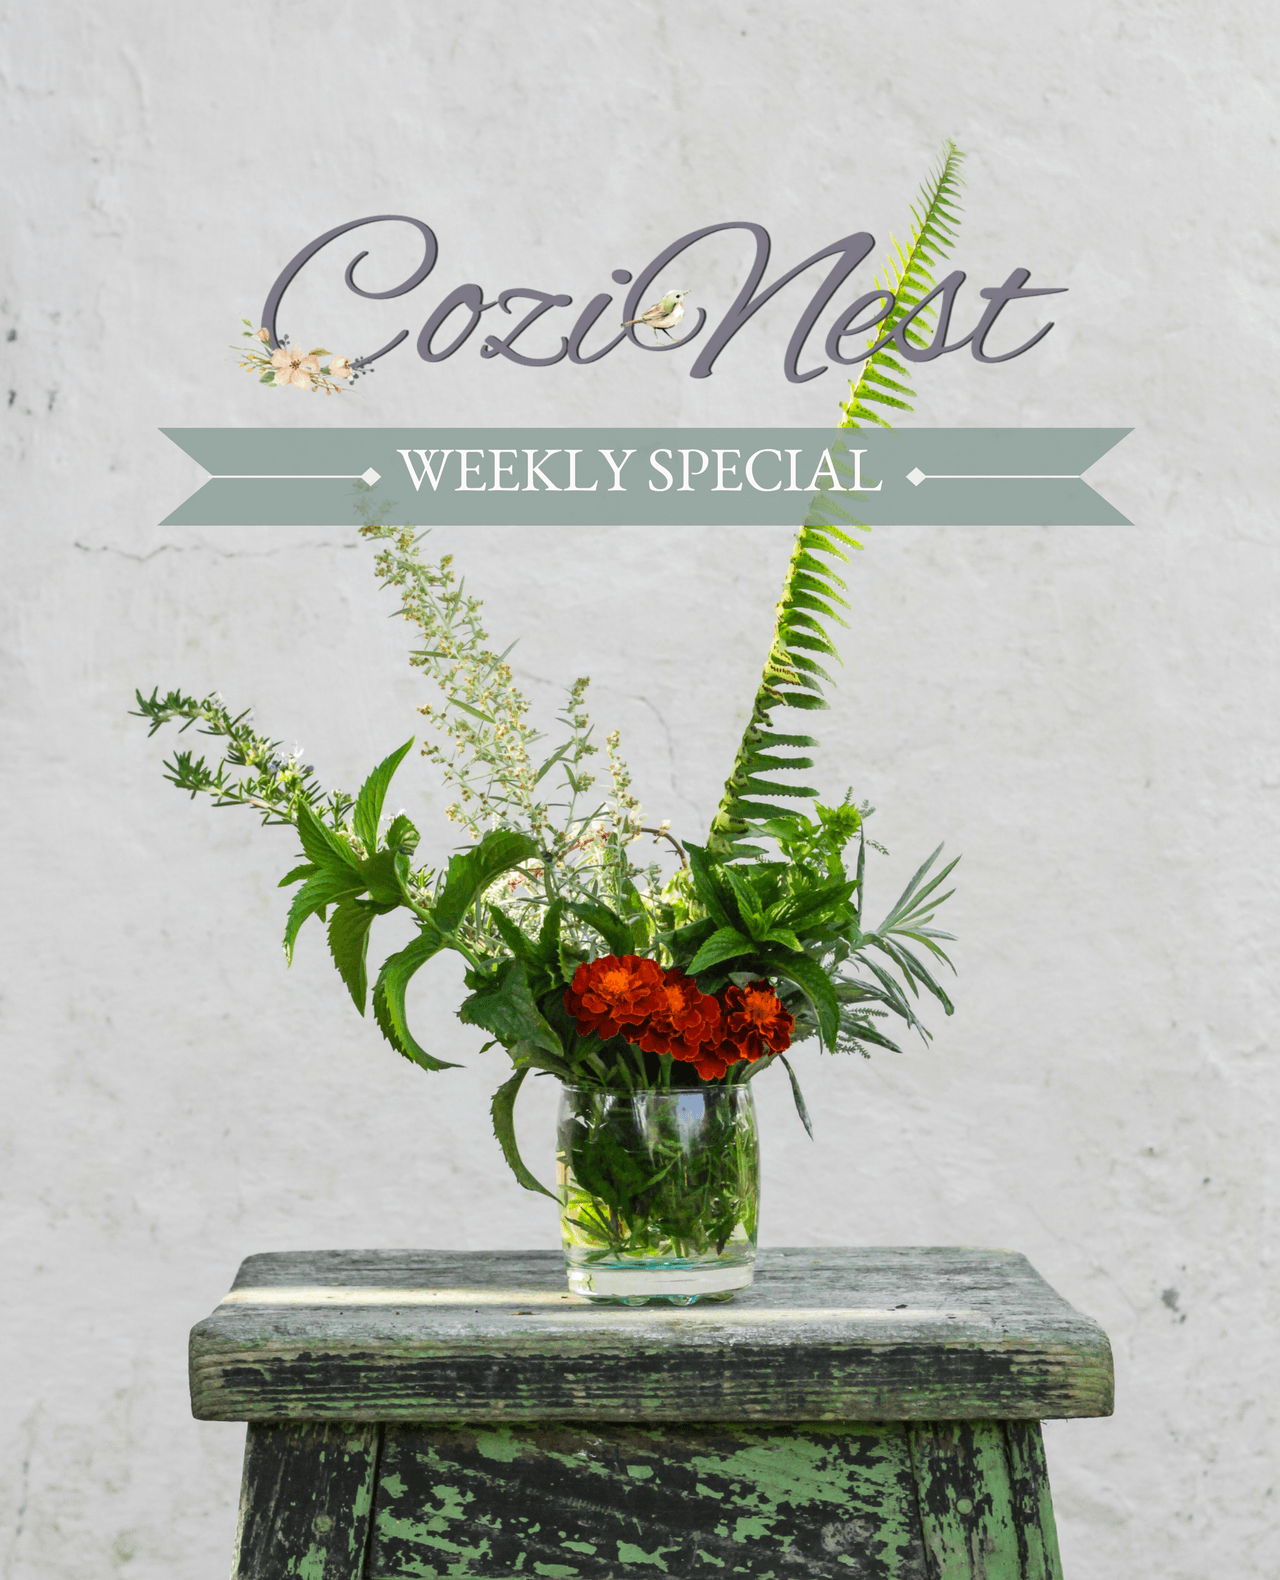 CoziNest Weekly Special 3/26/18 Just in Time for Easter